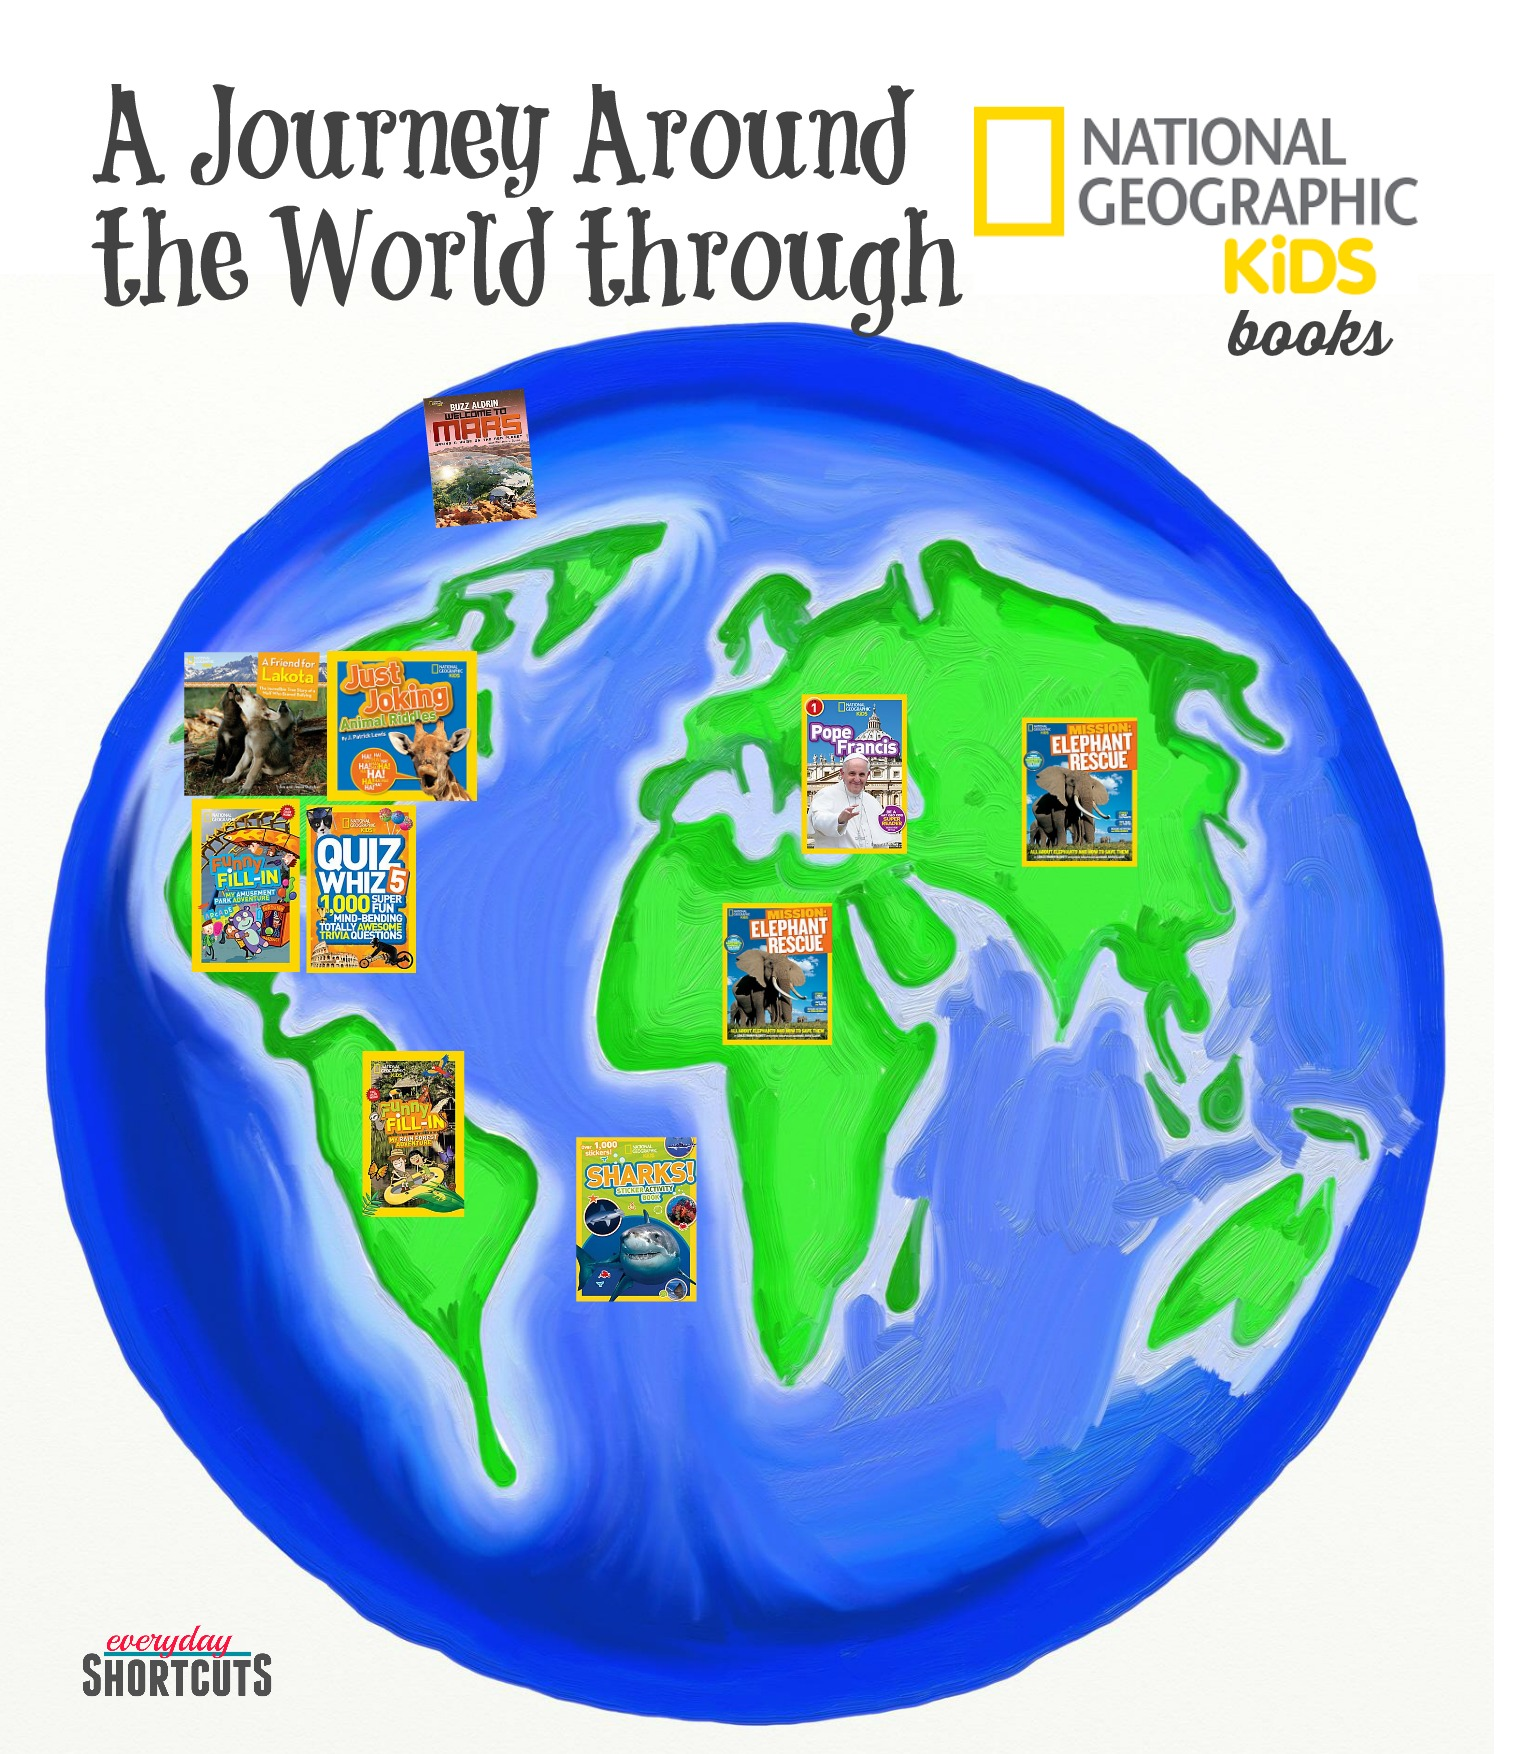 A Journey Around the World through National Geographic Kids